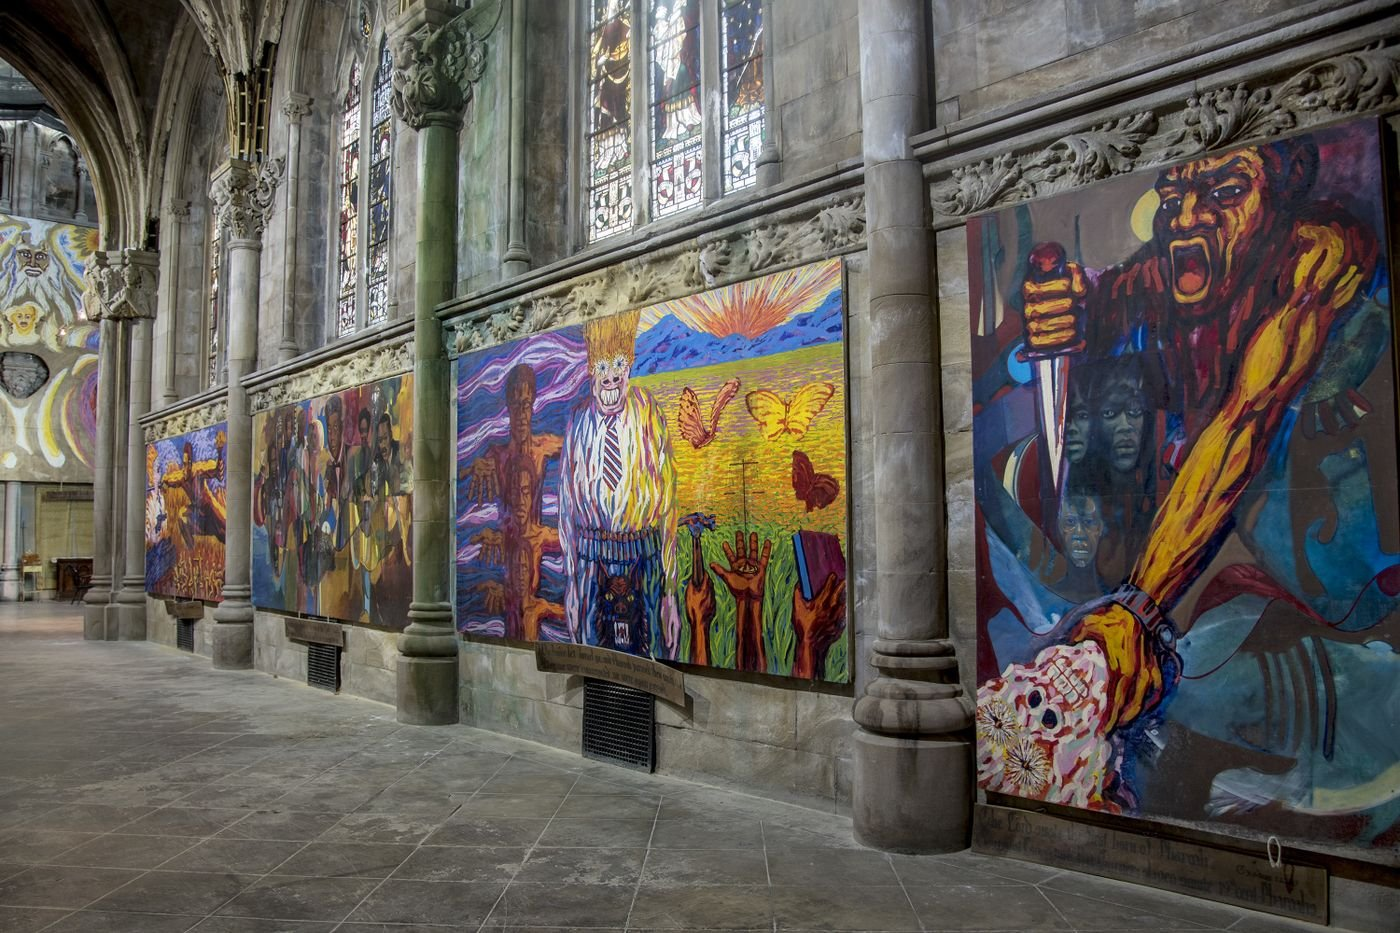 Murals inside the church